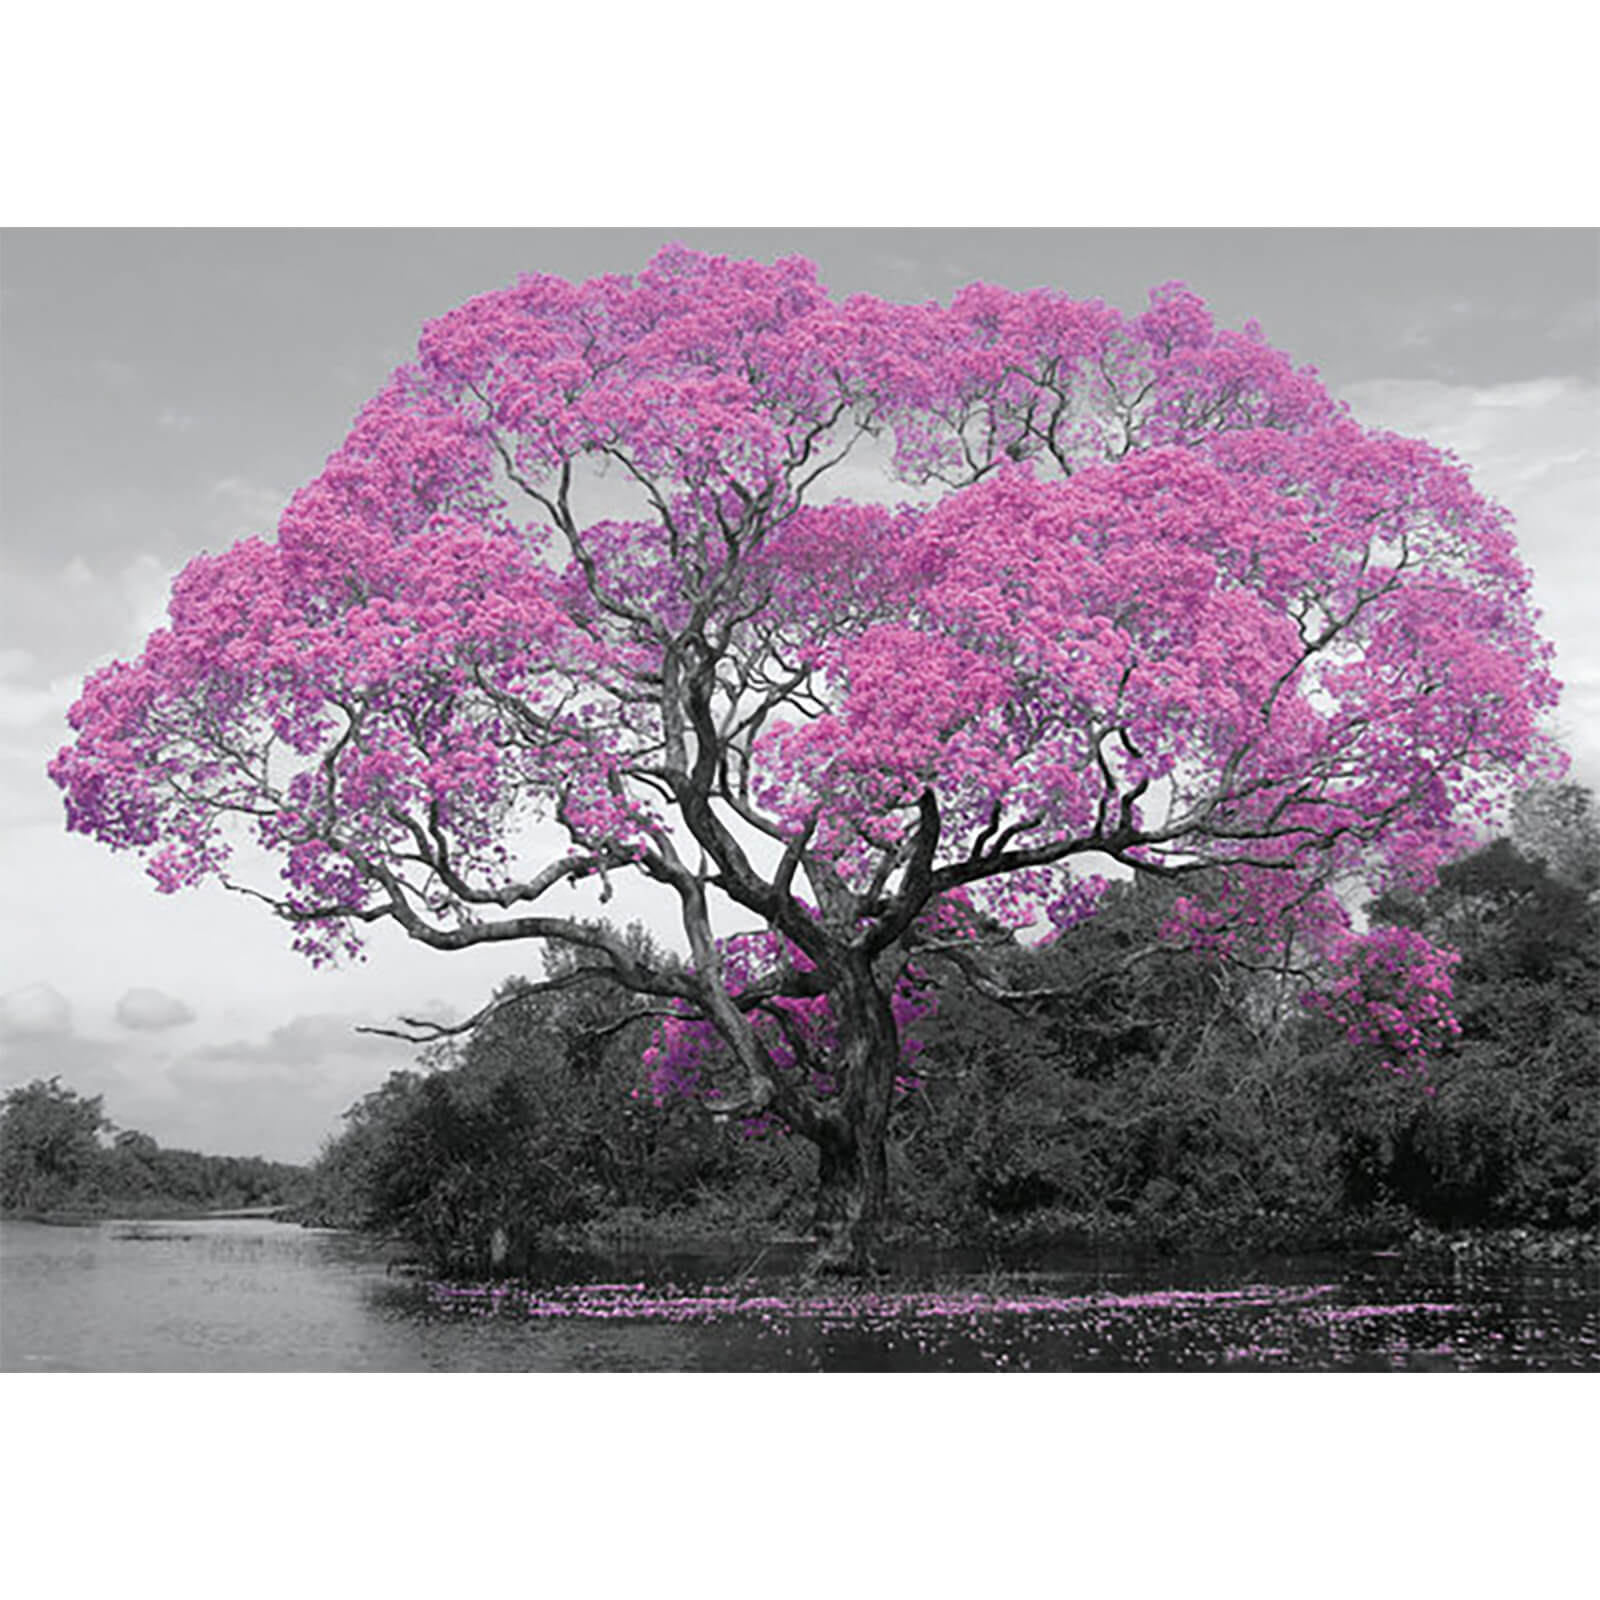 Tree Blossom - 100 x 140cm Giant Poster